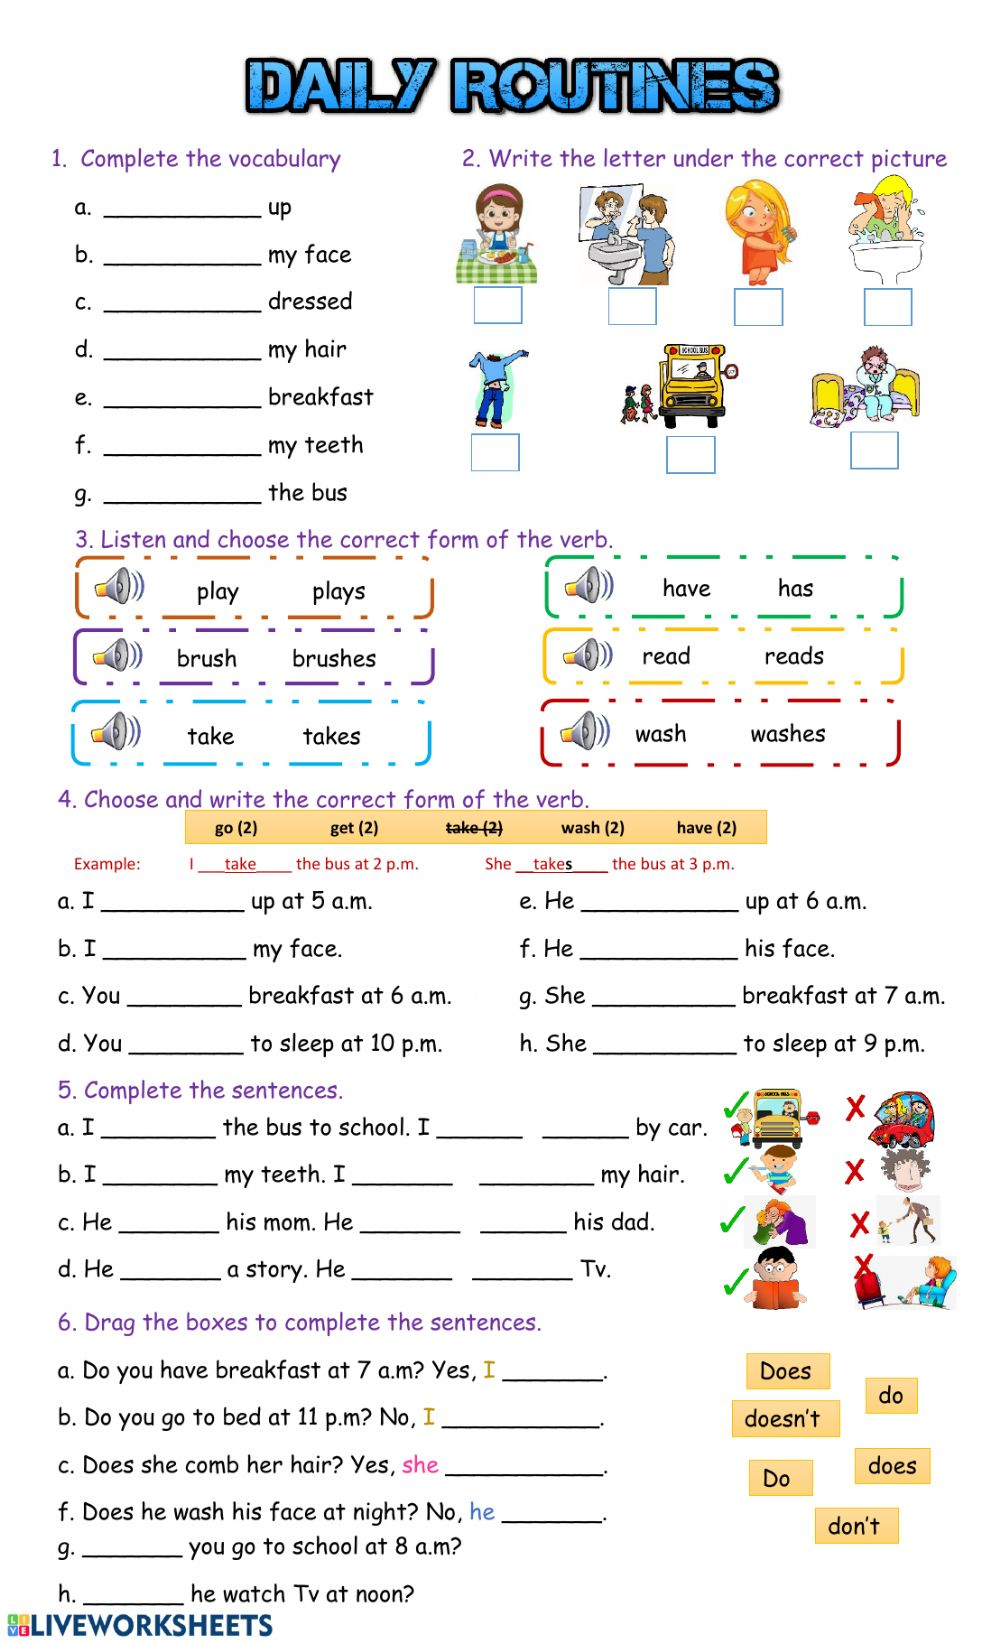 Daily Routines online worksheet